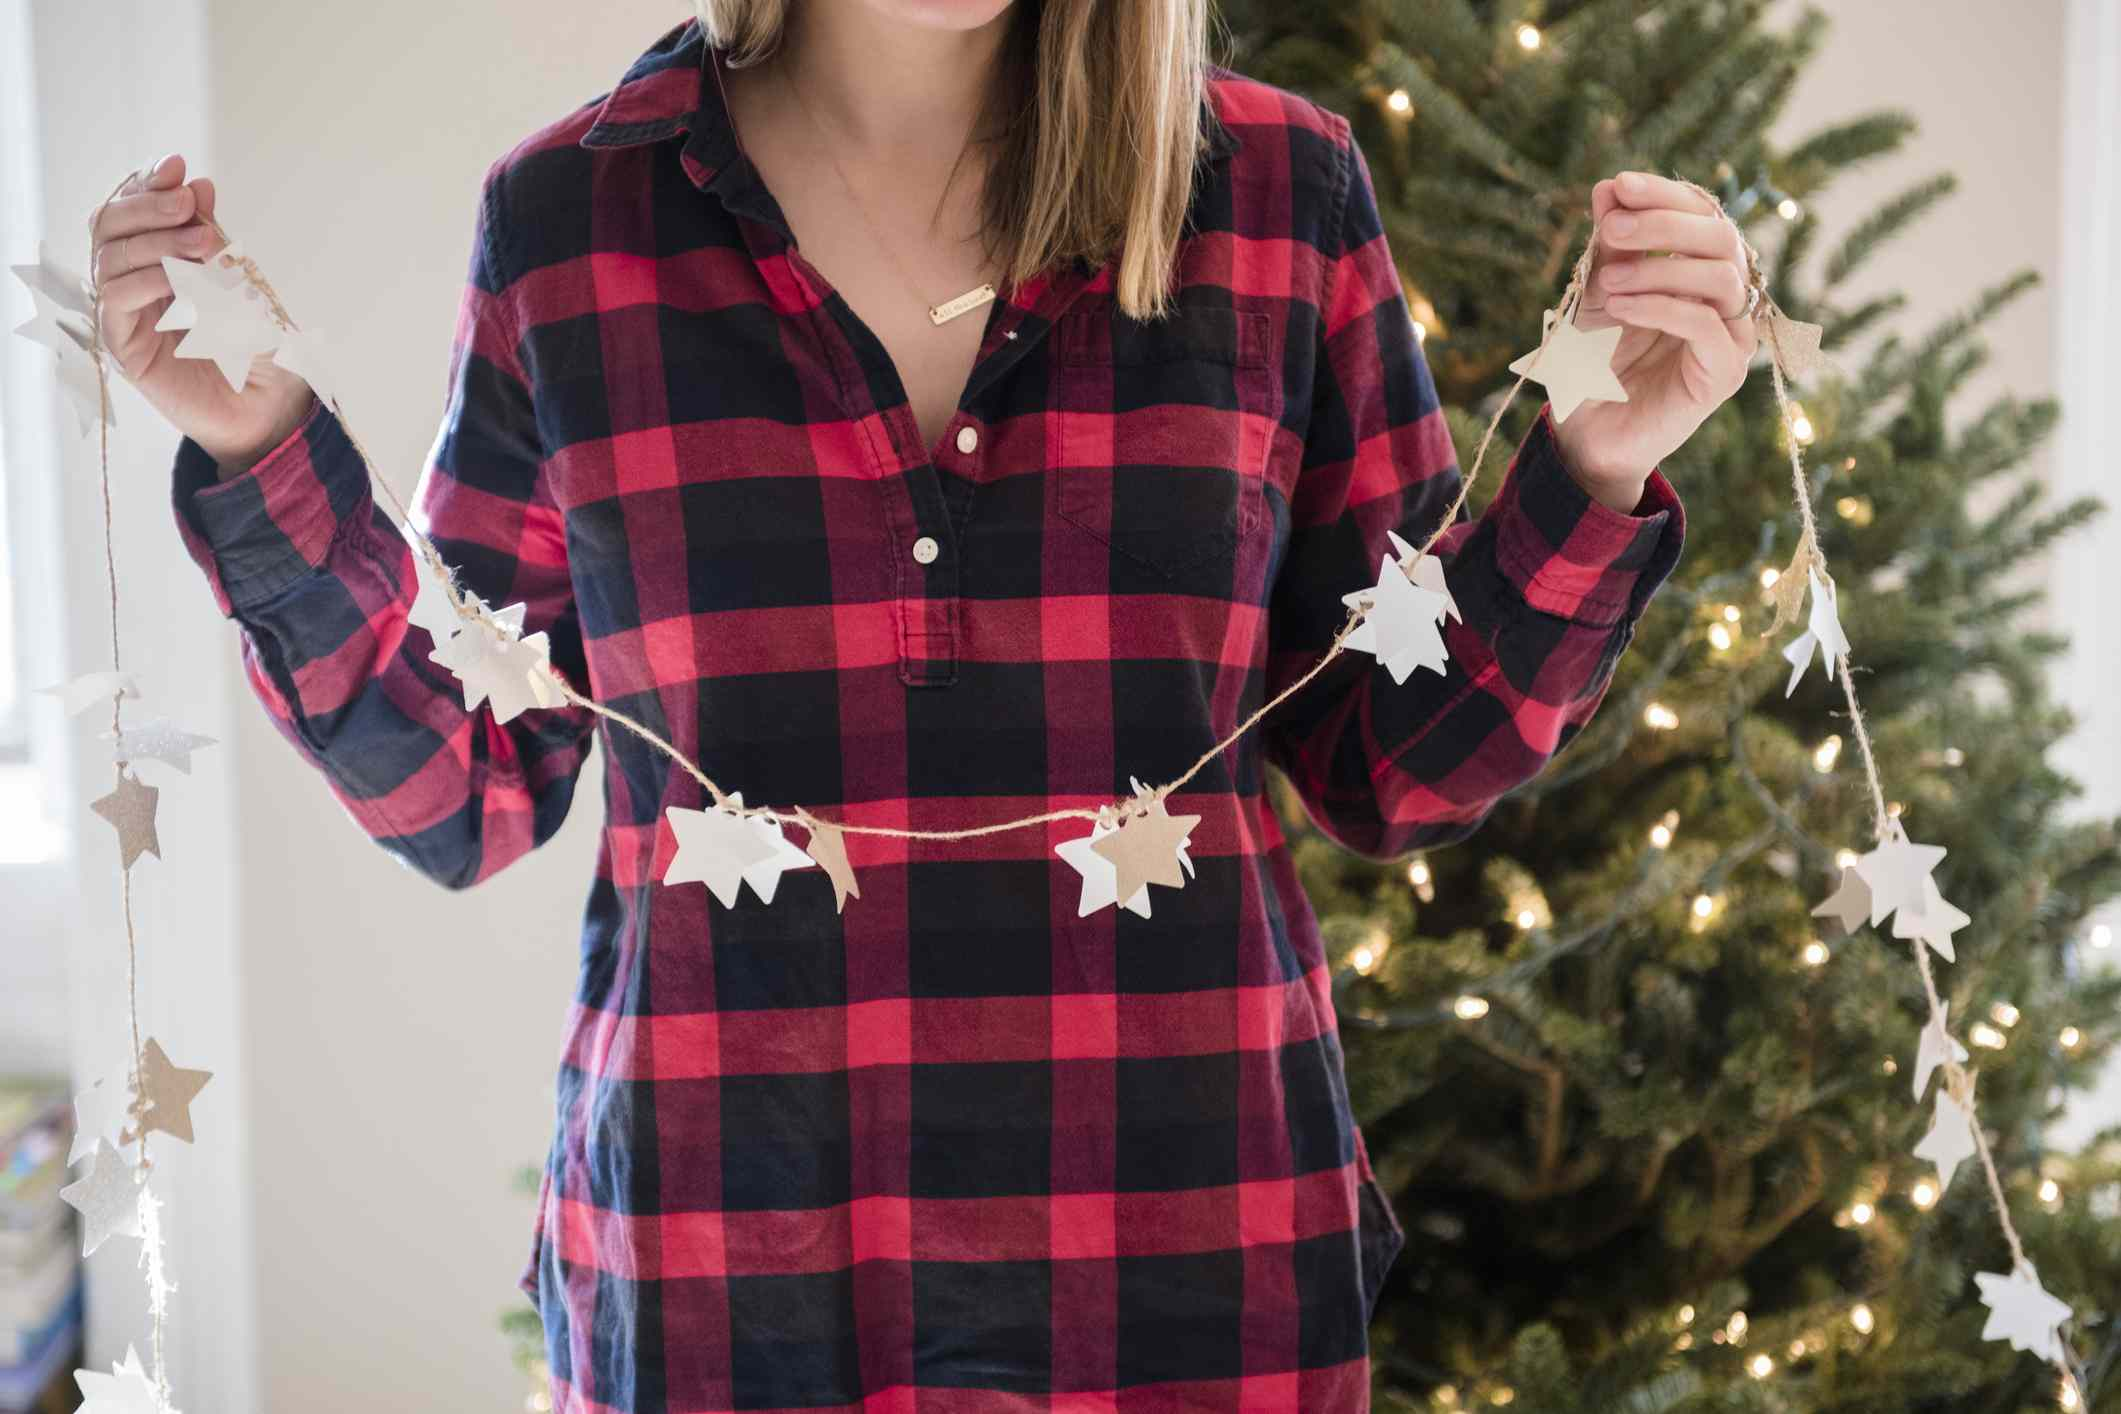 woman decorating for christmas